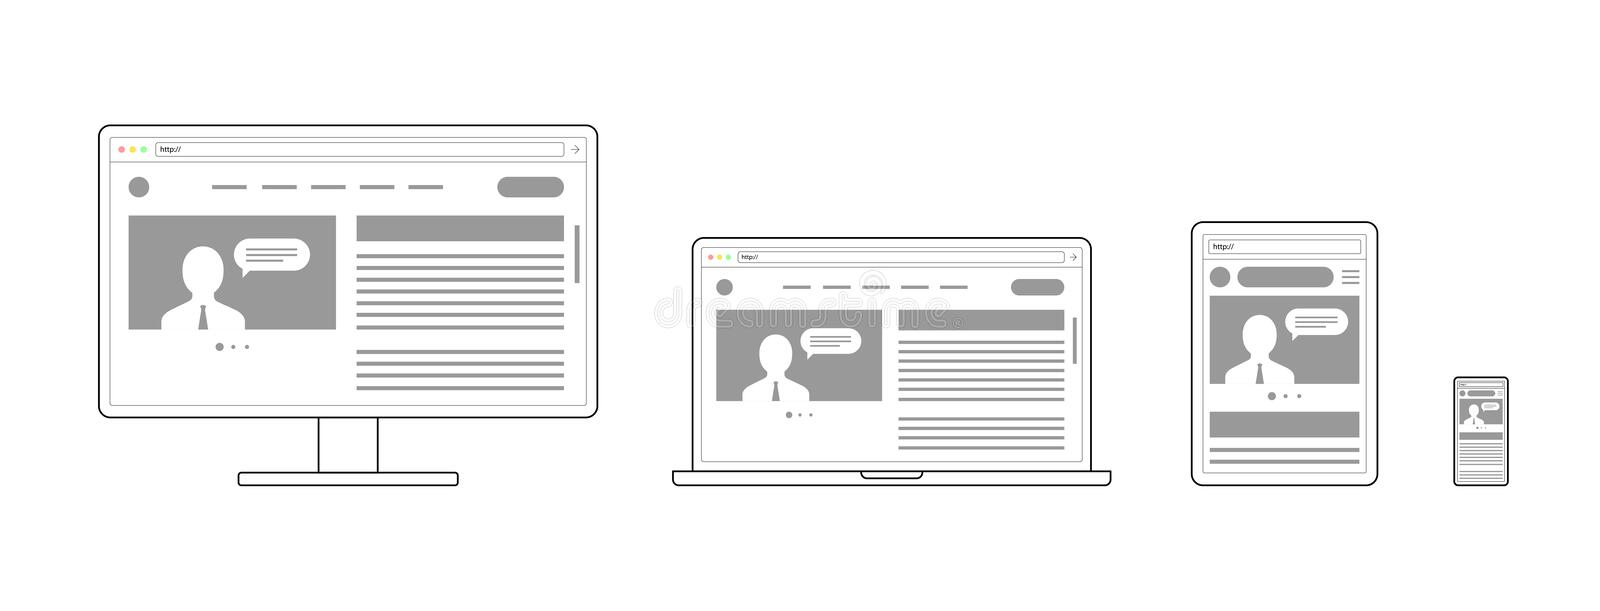 Responsive adaptive web design. Website open on different devices. Computer PC monitor, laptop, tablet, smartphone. Mobile. Flat minimalistic modern digital vector illustration